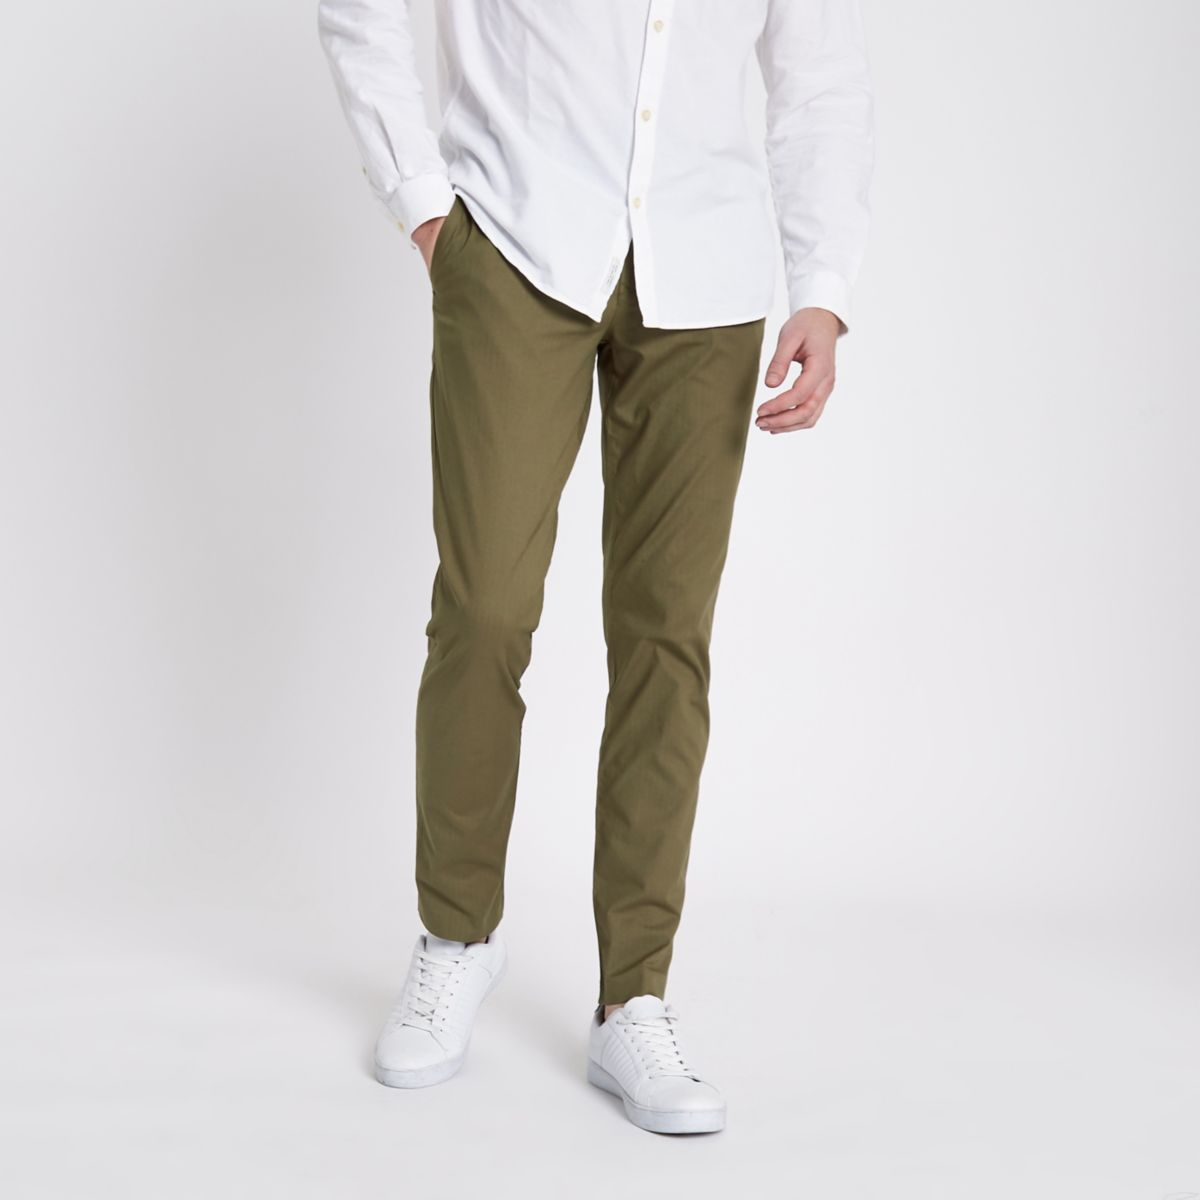 Khaki green slim fit chino trousers